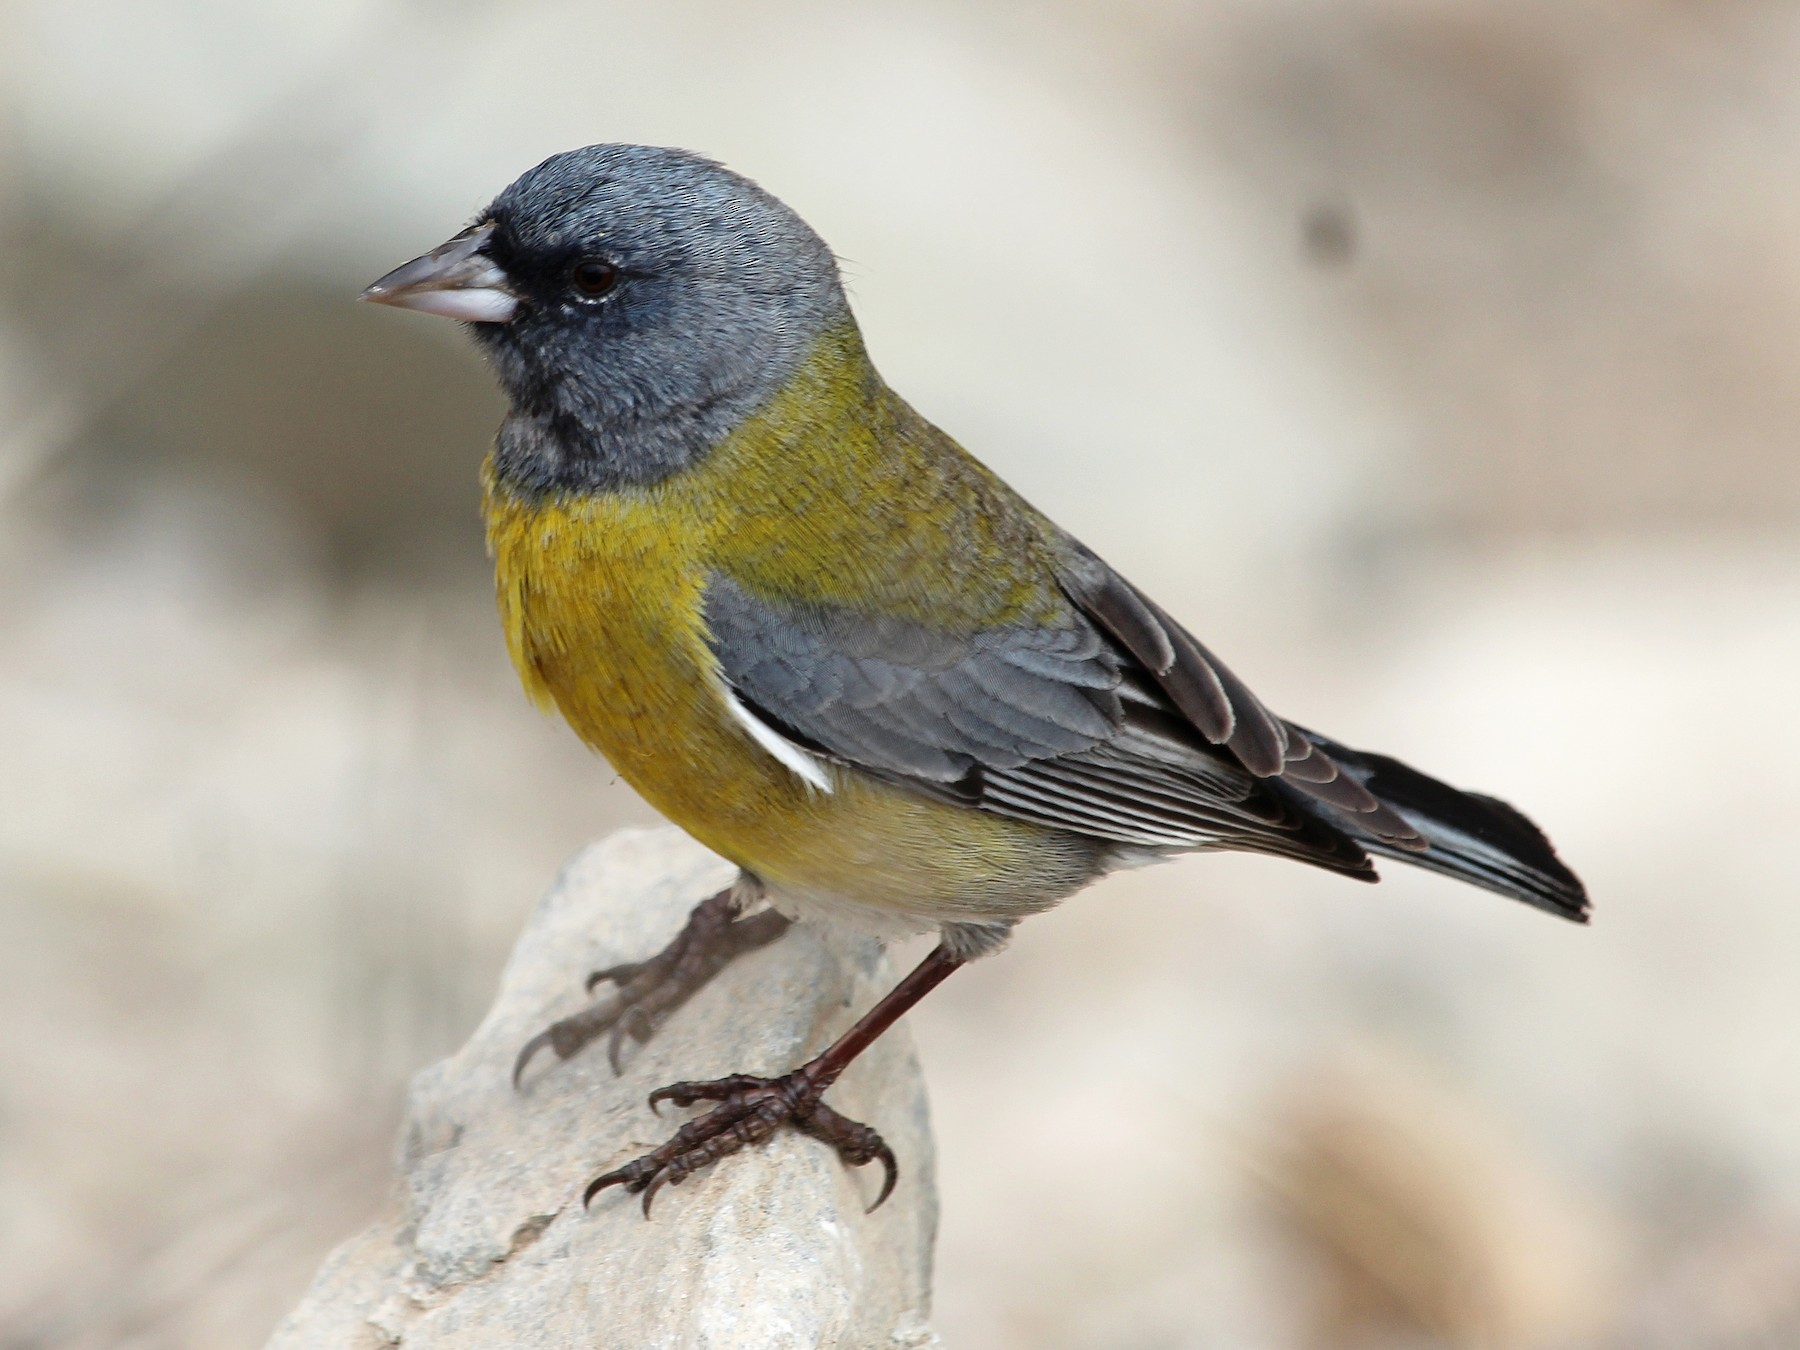 Gray-hooded Sierra-Finch - Juan Mauricio Contreras